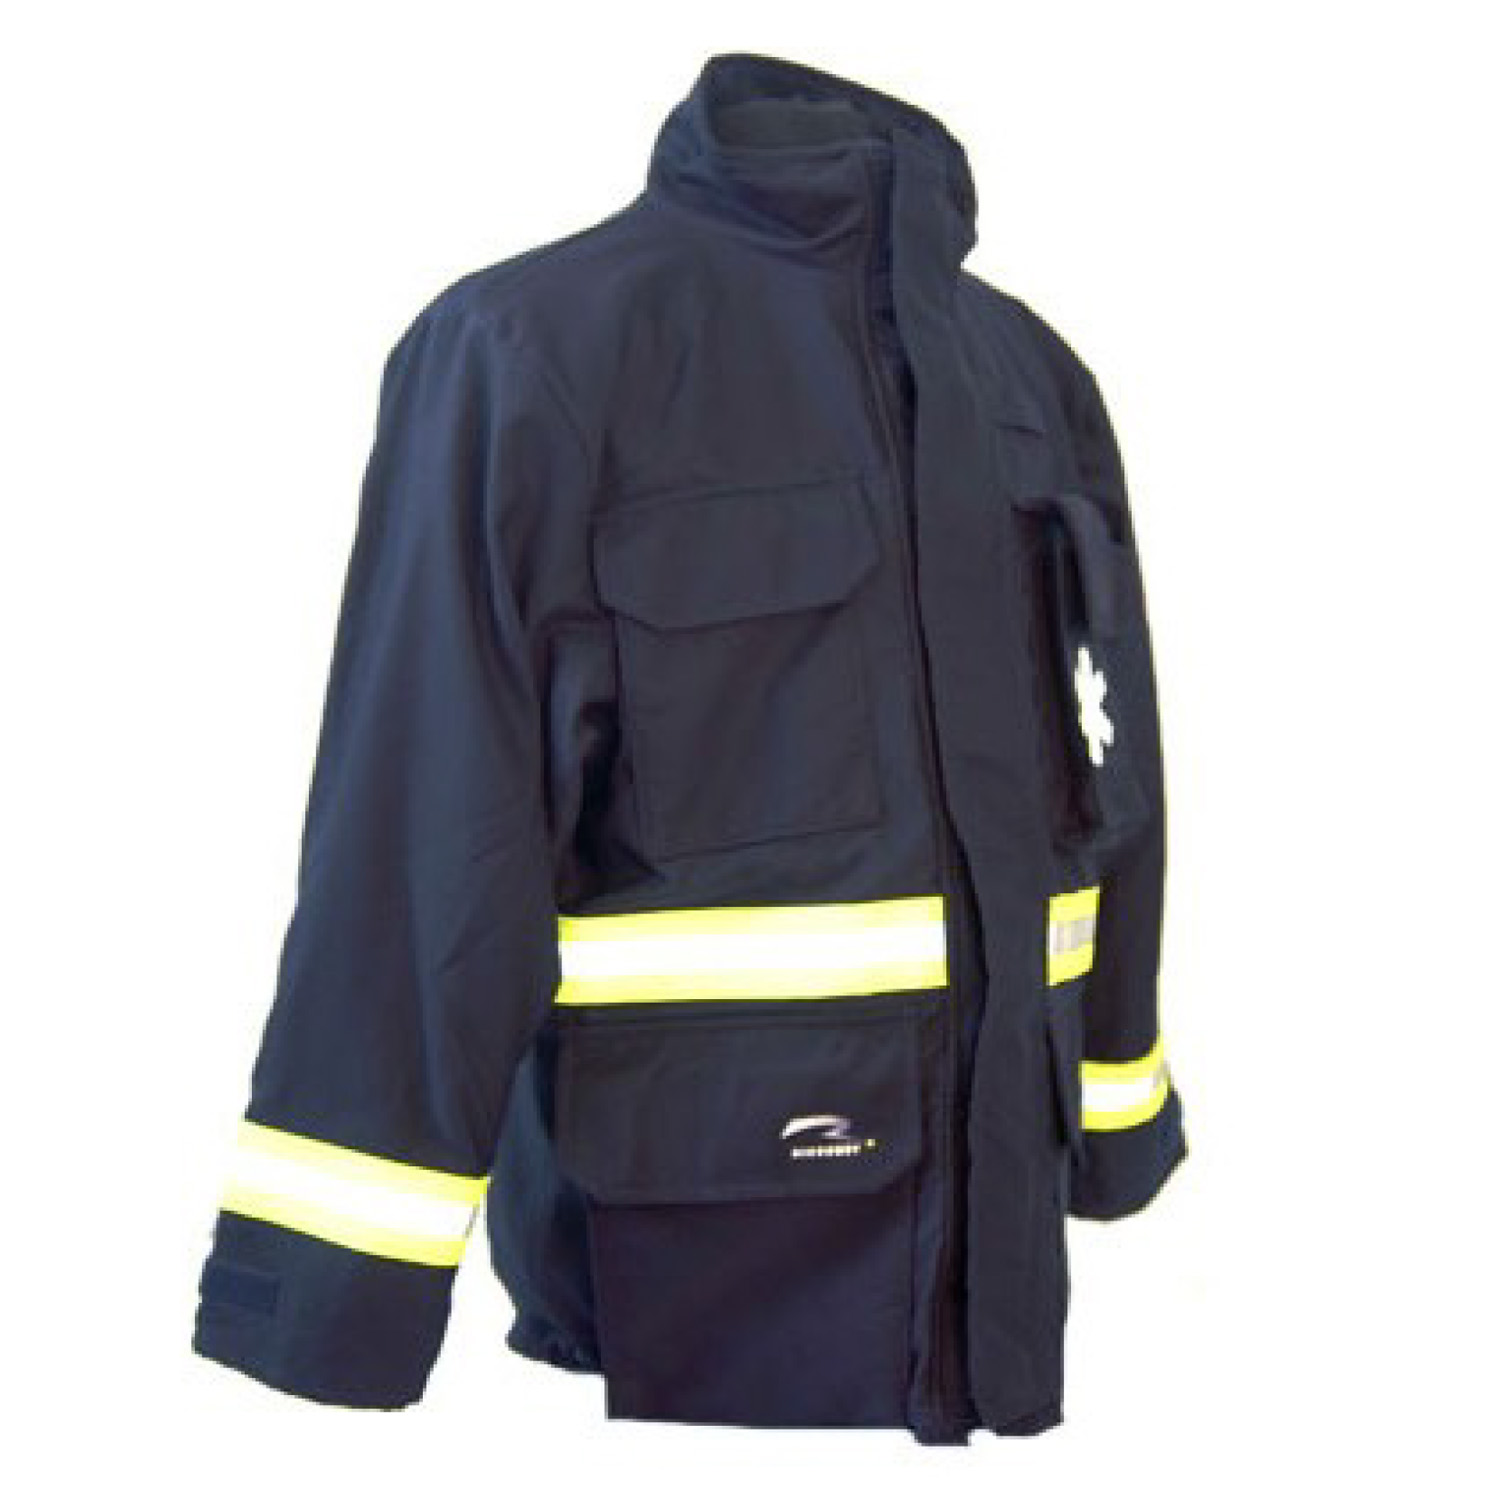 ricochet gear EMS FR series jacket front side view